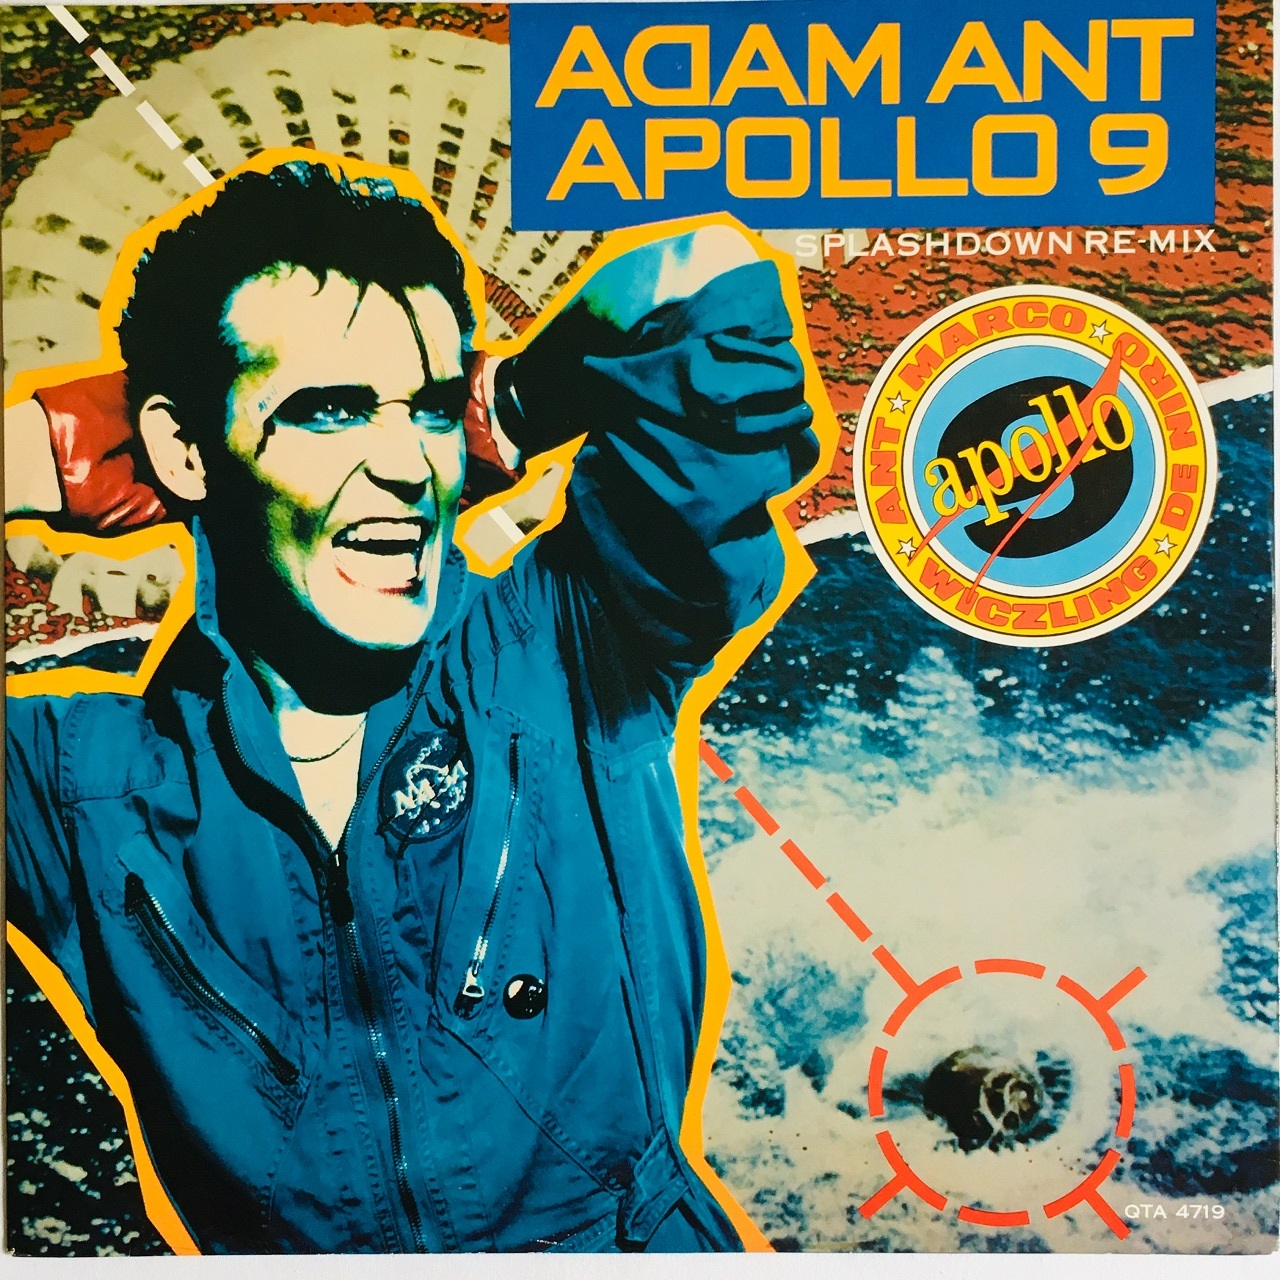 【12inch・英盤】Adam Ant / Apollo 9 (Splashdown Re-Mix)